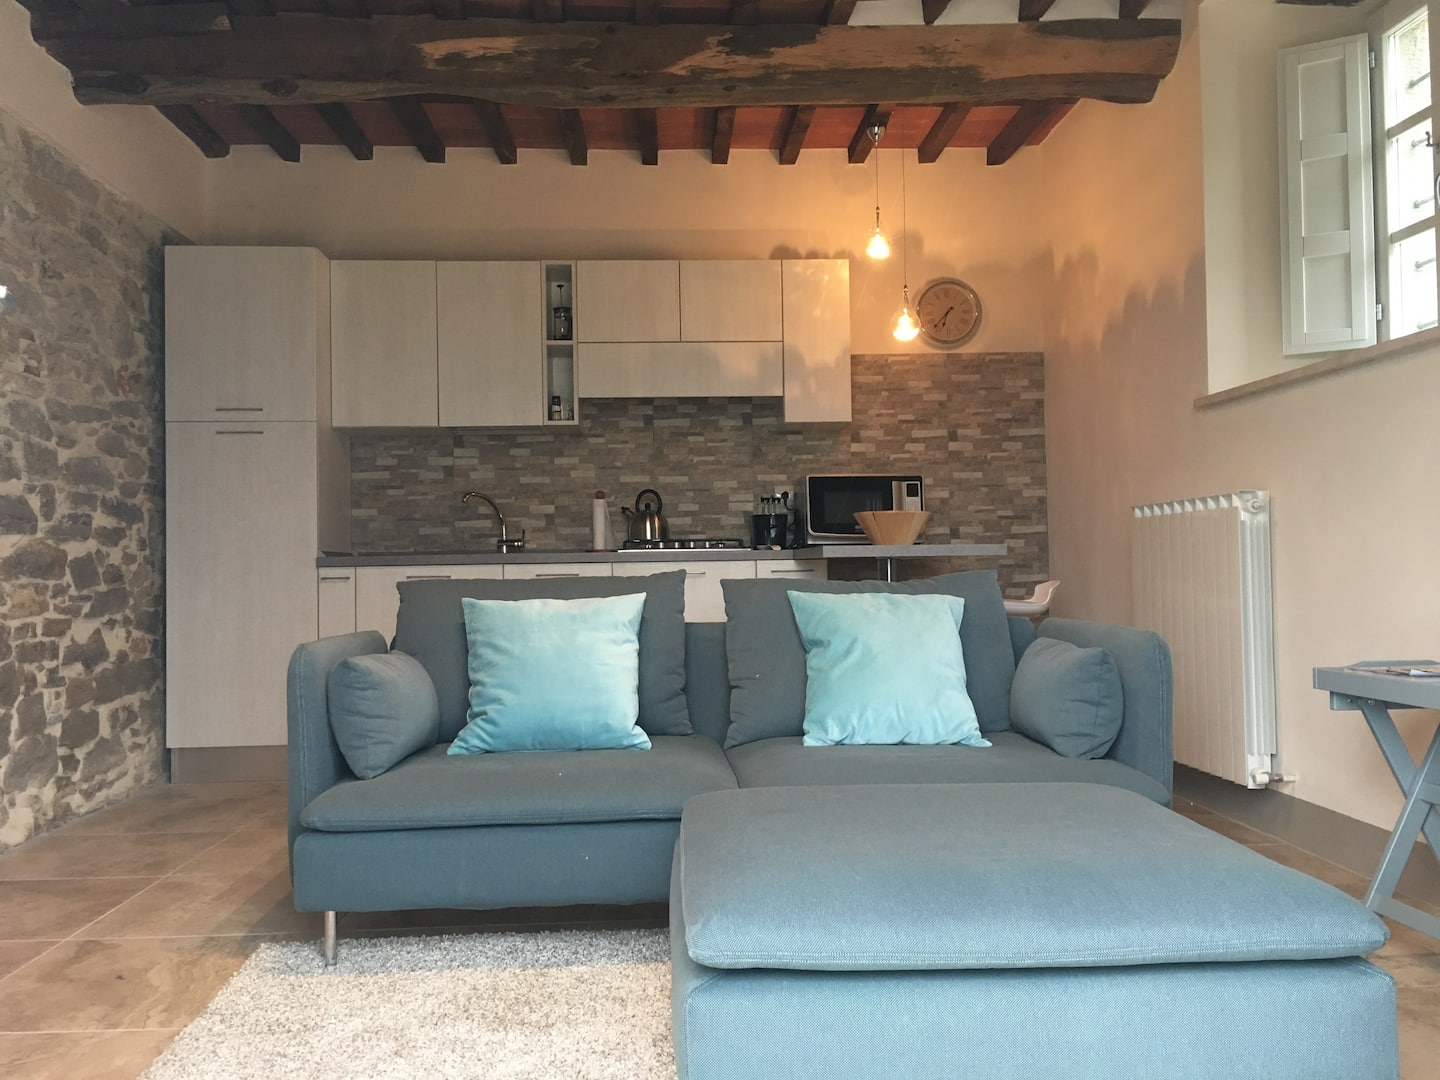 Image of Airbnb rental in Lucca, Italy